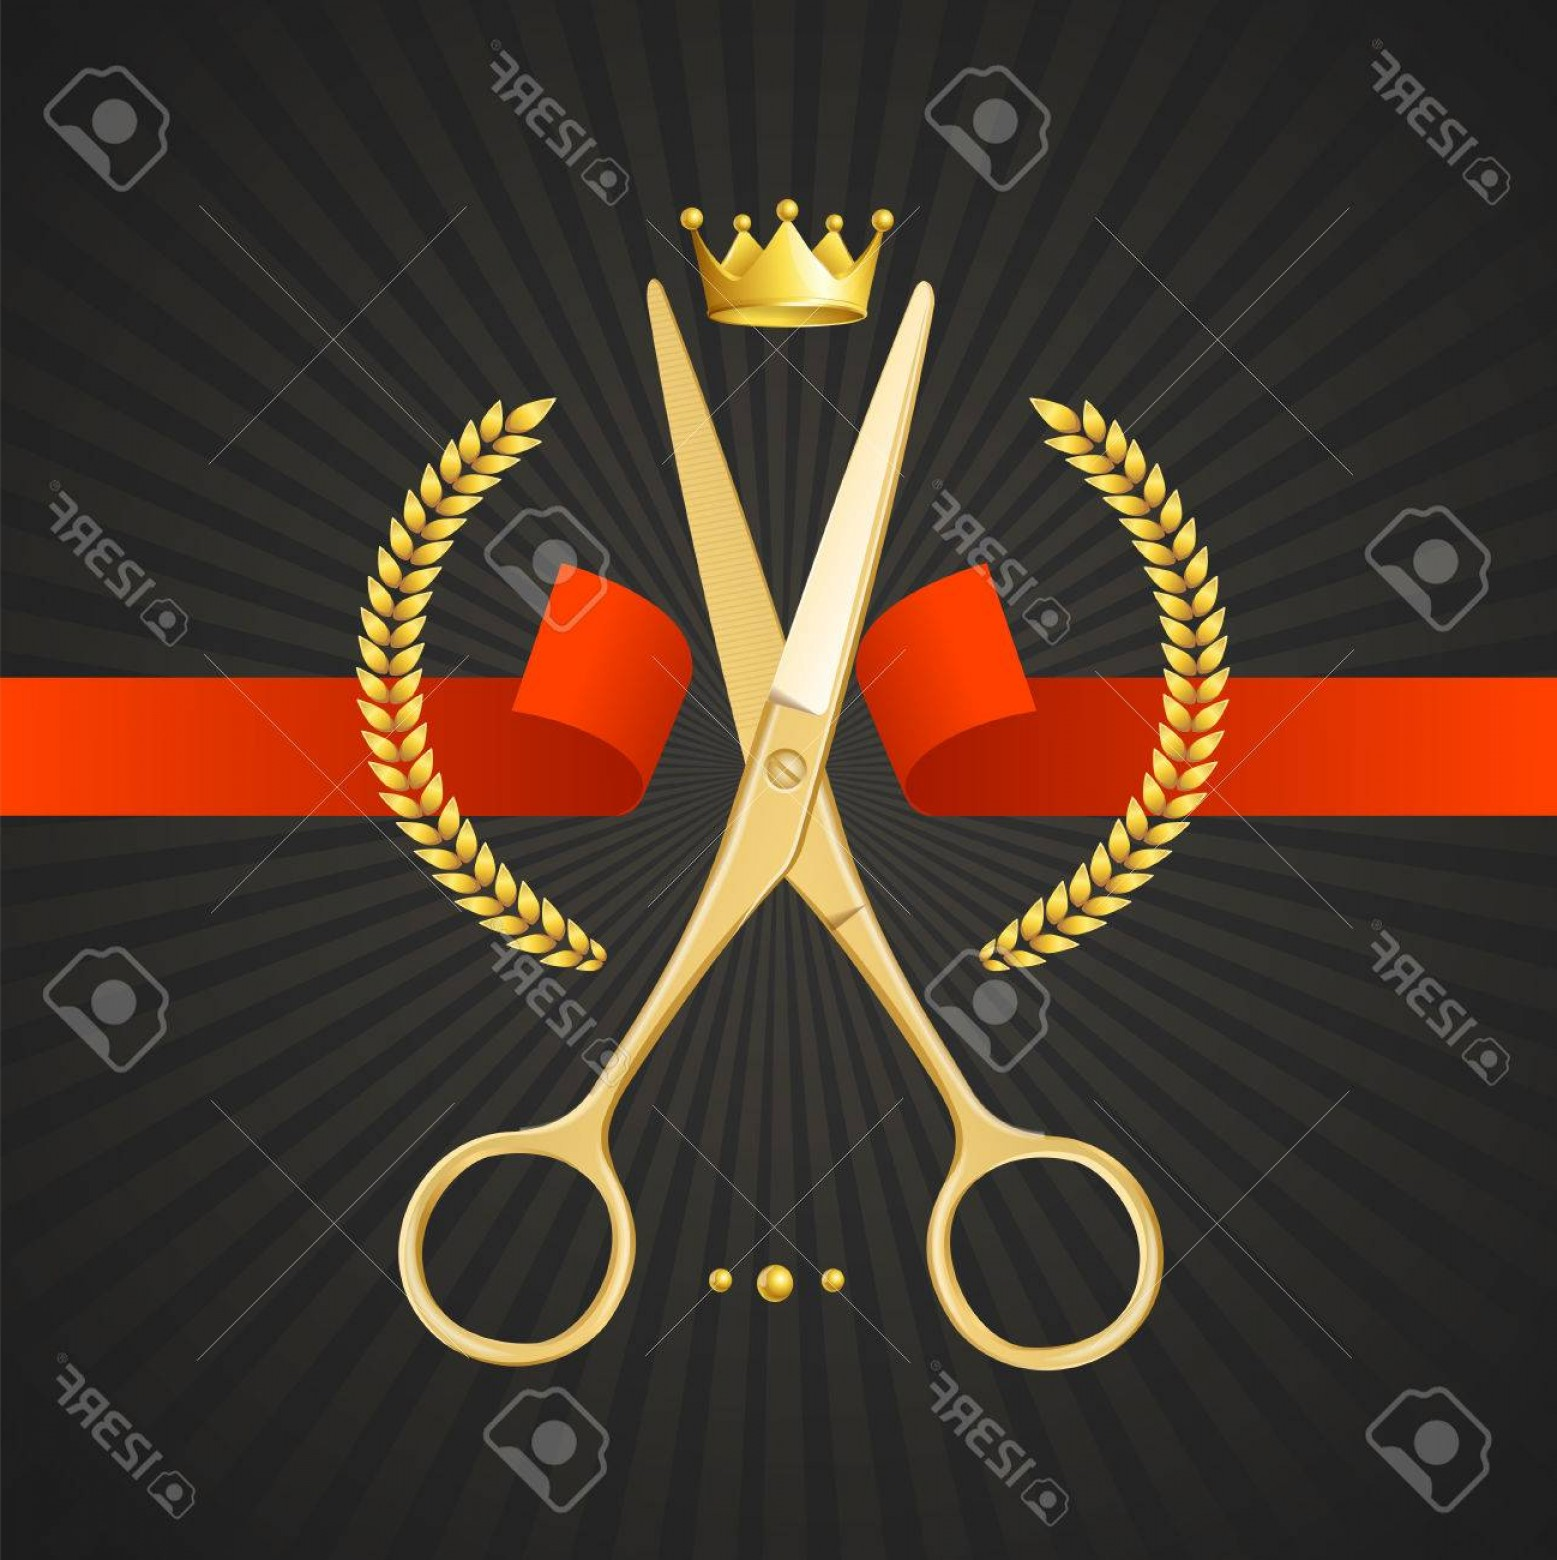 Golden Barber Vector: Photostock Vector Scissors Barber Concept Golden Scissors Cut The Red Ribbon The Symbol Of The Winner On A Black Backg